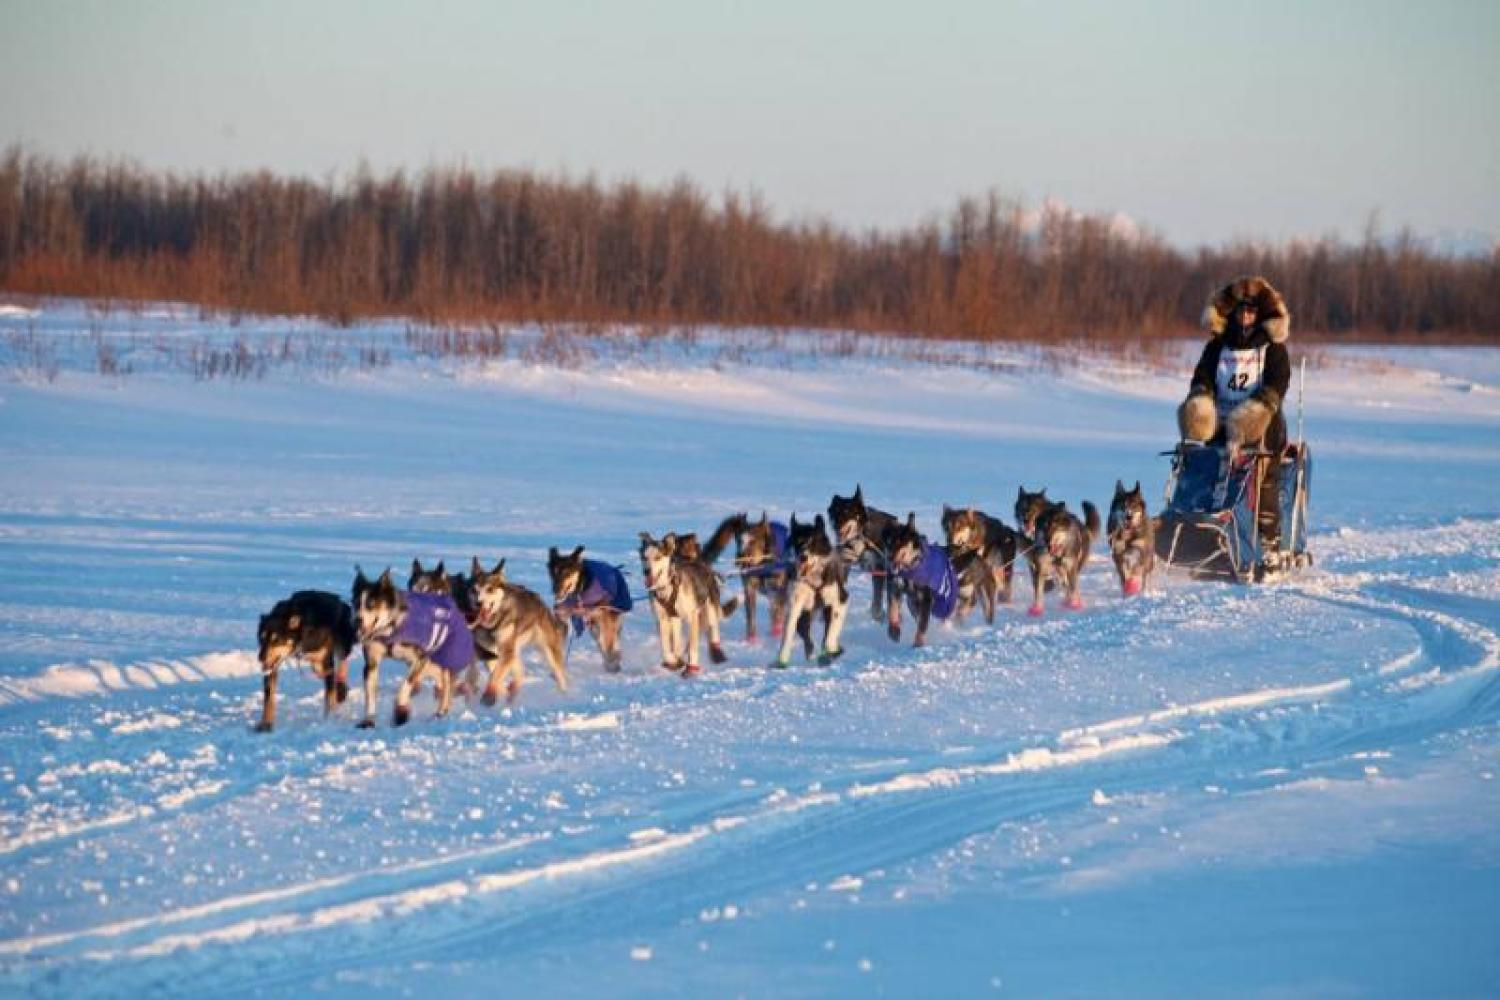 Image courtesy of Krista Heeringa An Iditarod sled dog team travels along a frozen river.